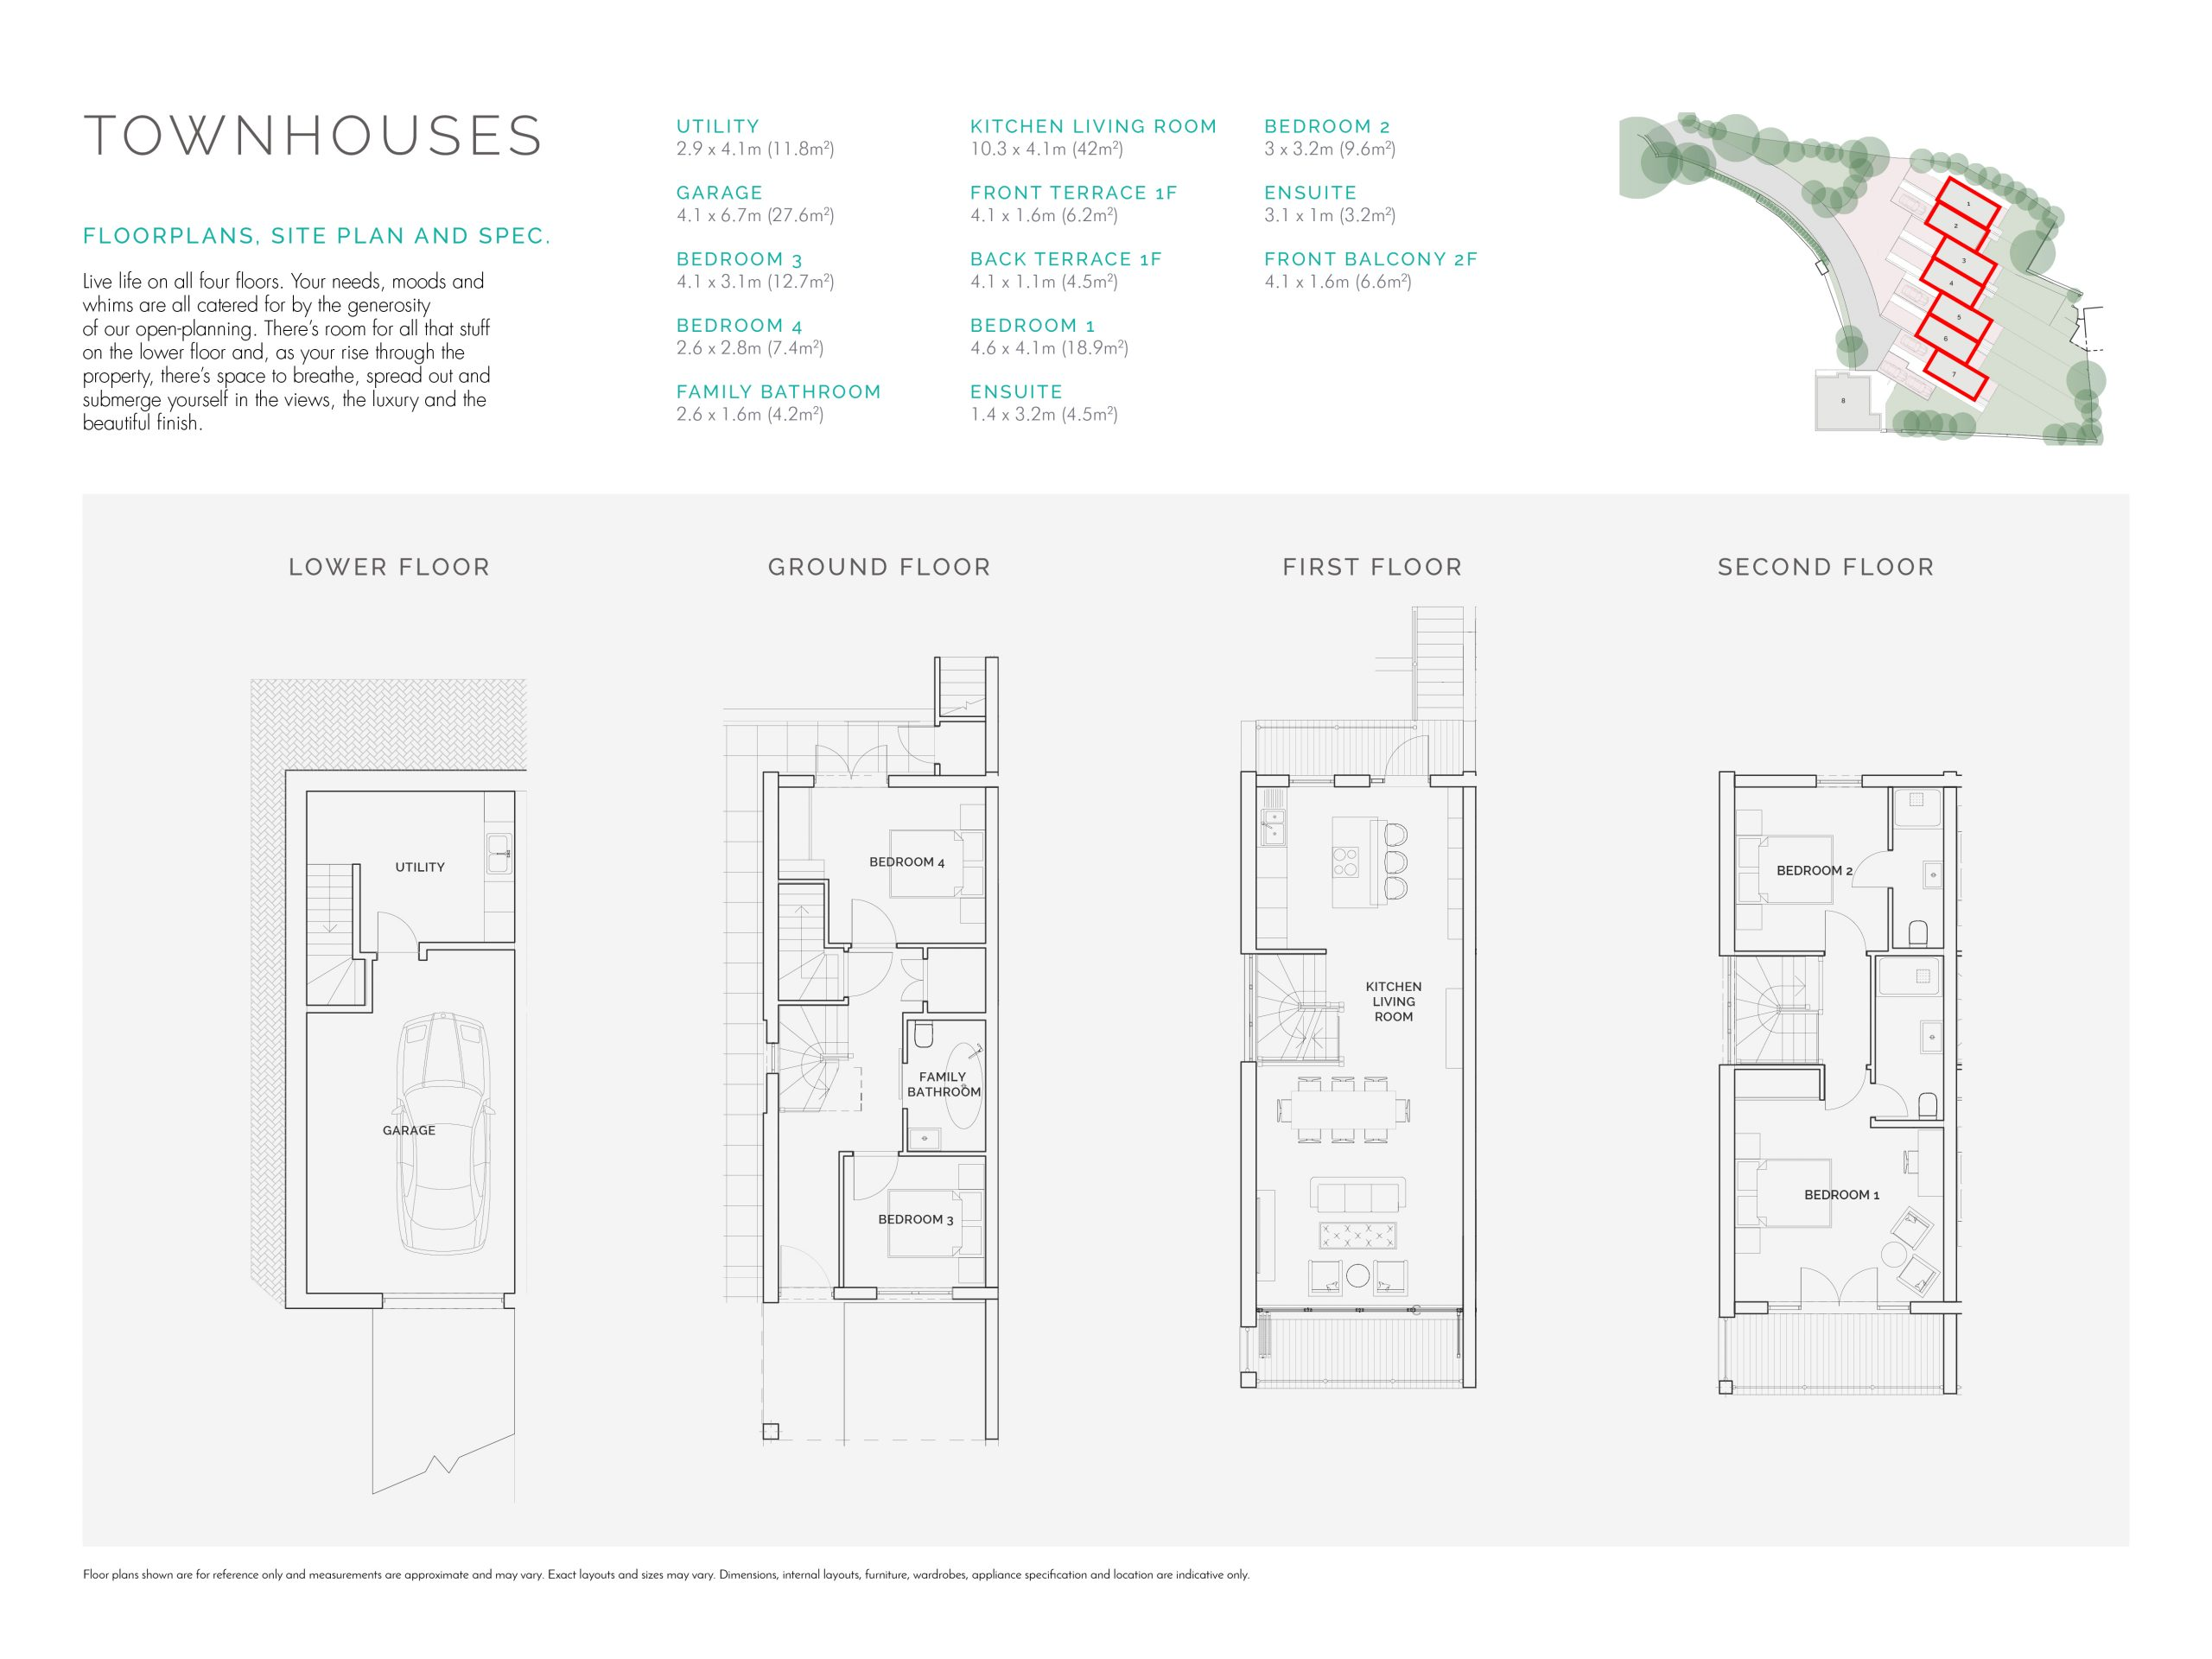 Stephens and stephens developers The Strand porth newquay cornwall Floorplans 1200x900 townhouses